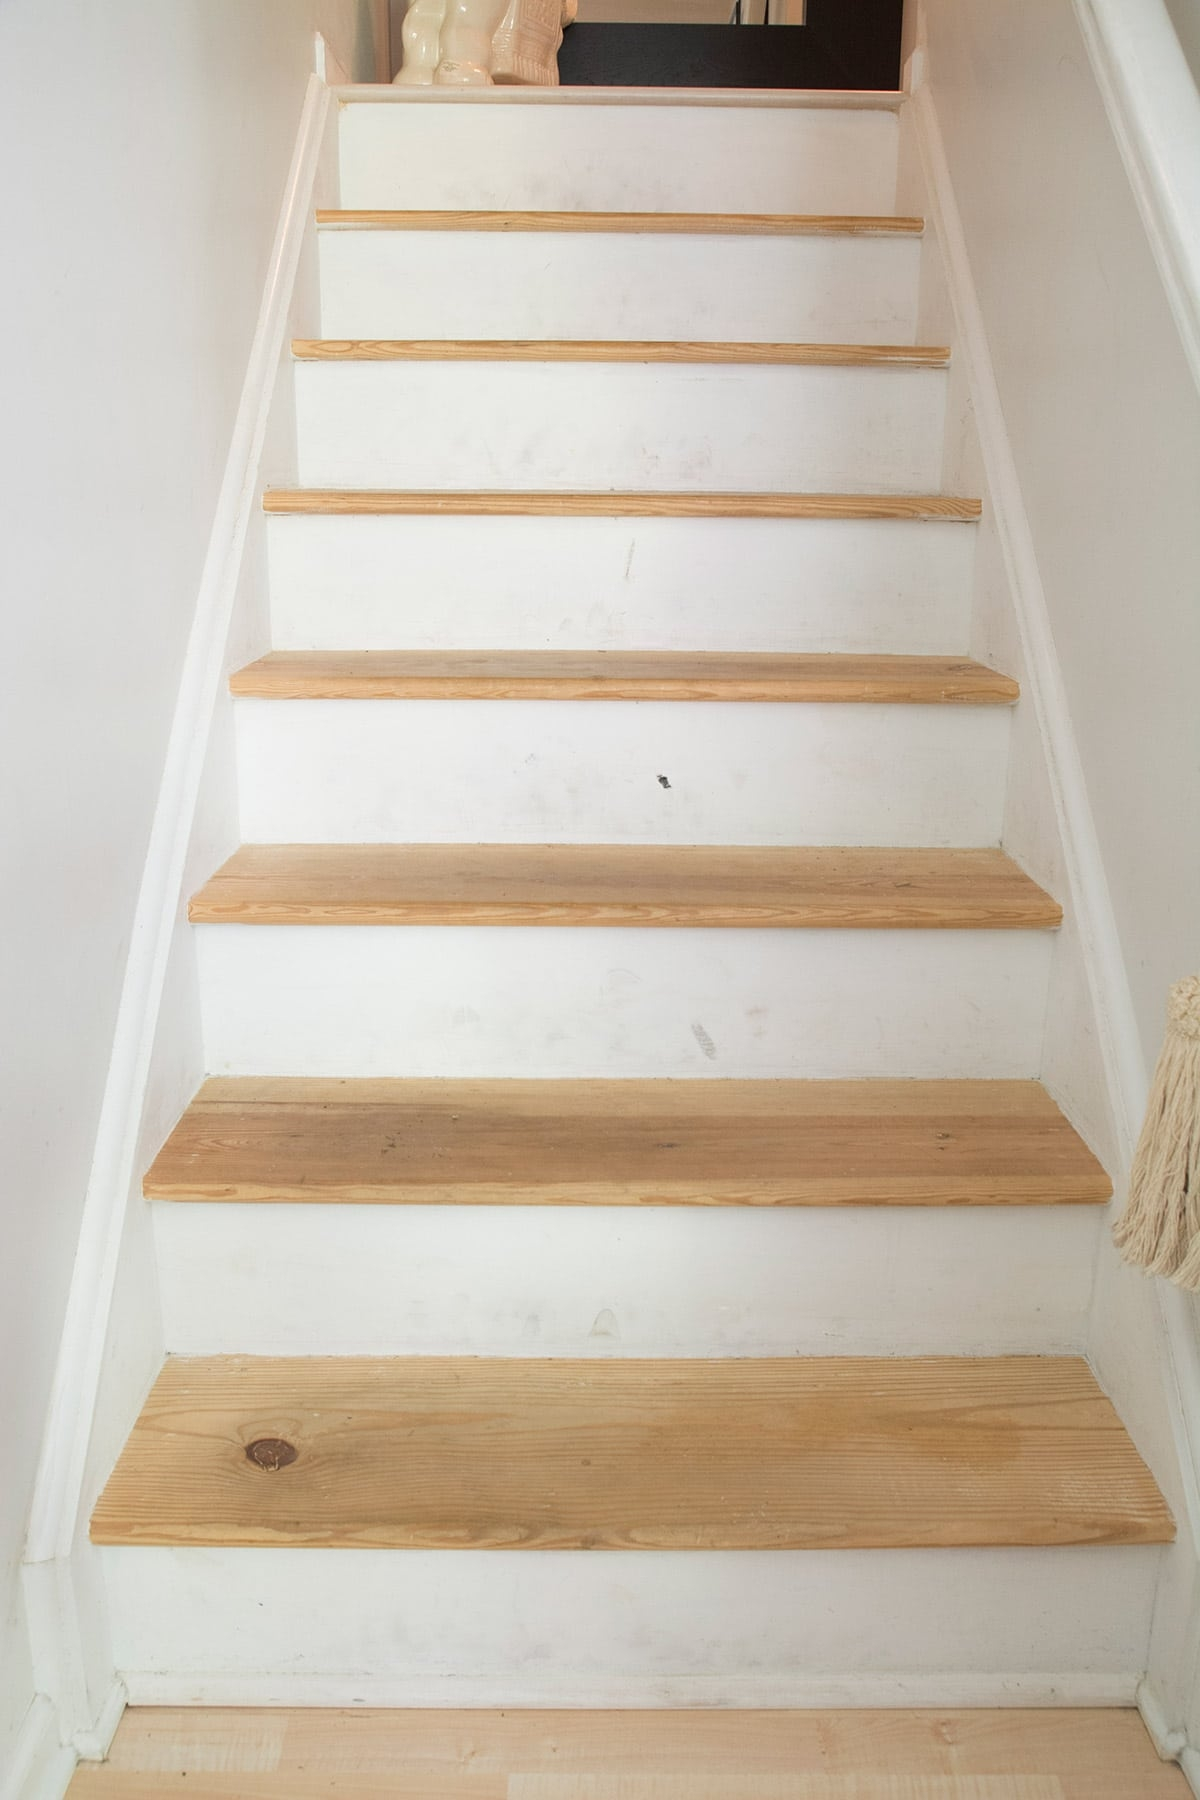 Removing Carpet From Stairs Cuckoo4Design   Wooden Floor And Carpet On Stairs   Carpet Runner   Downstairs   Middle Stair   Popular   Wood Riser